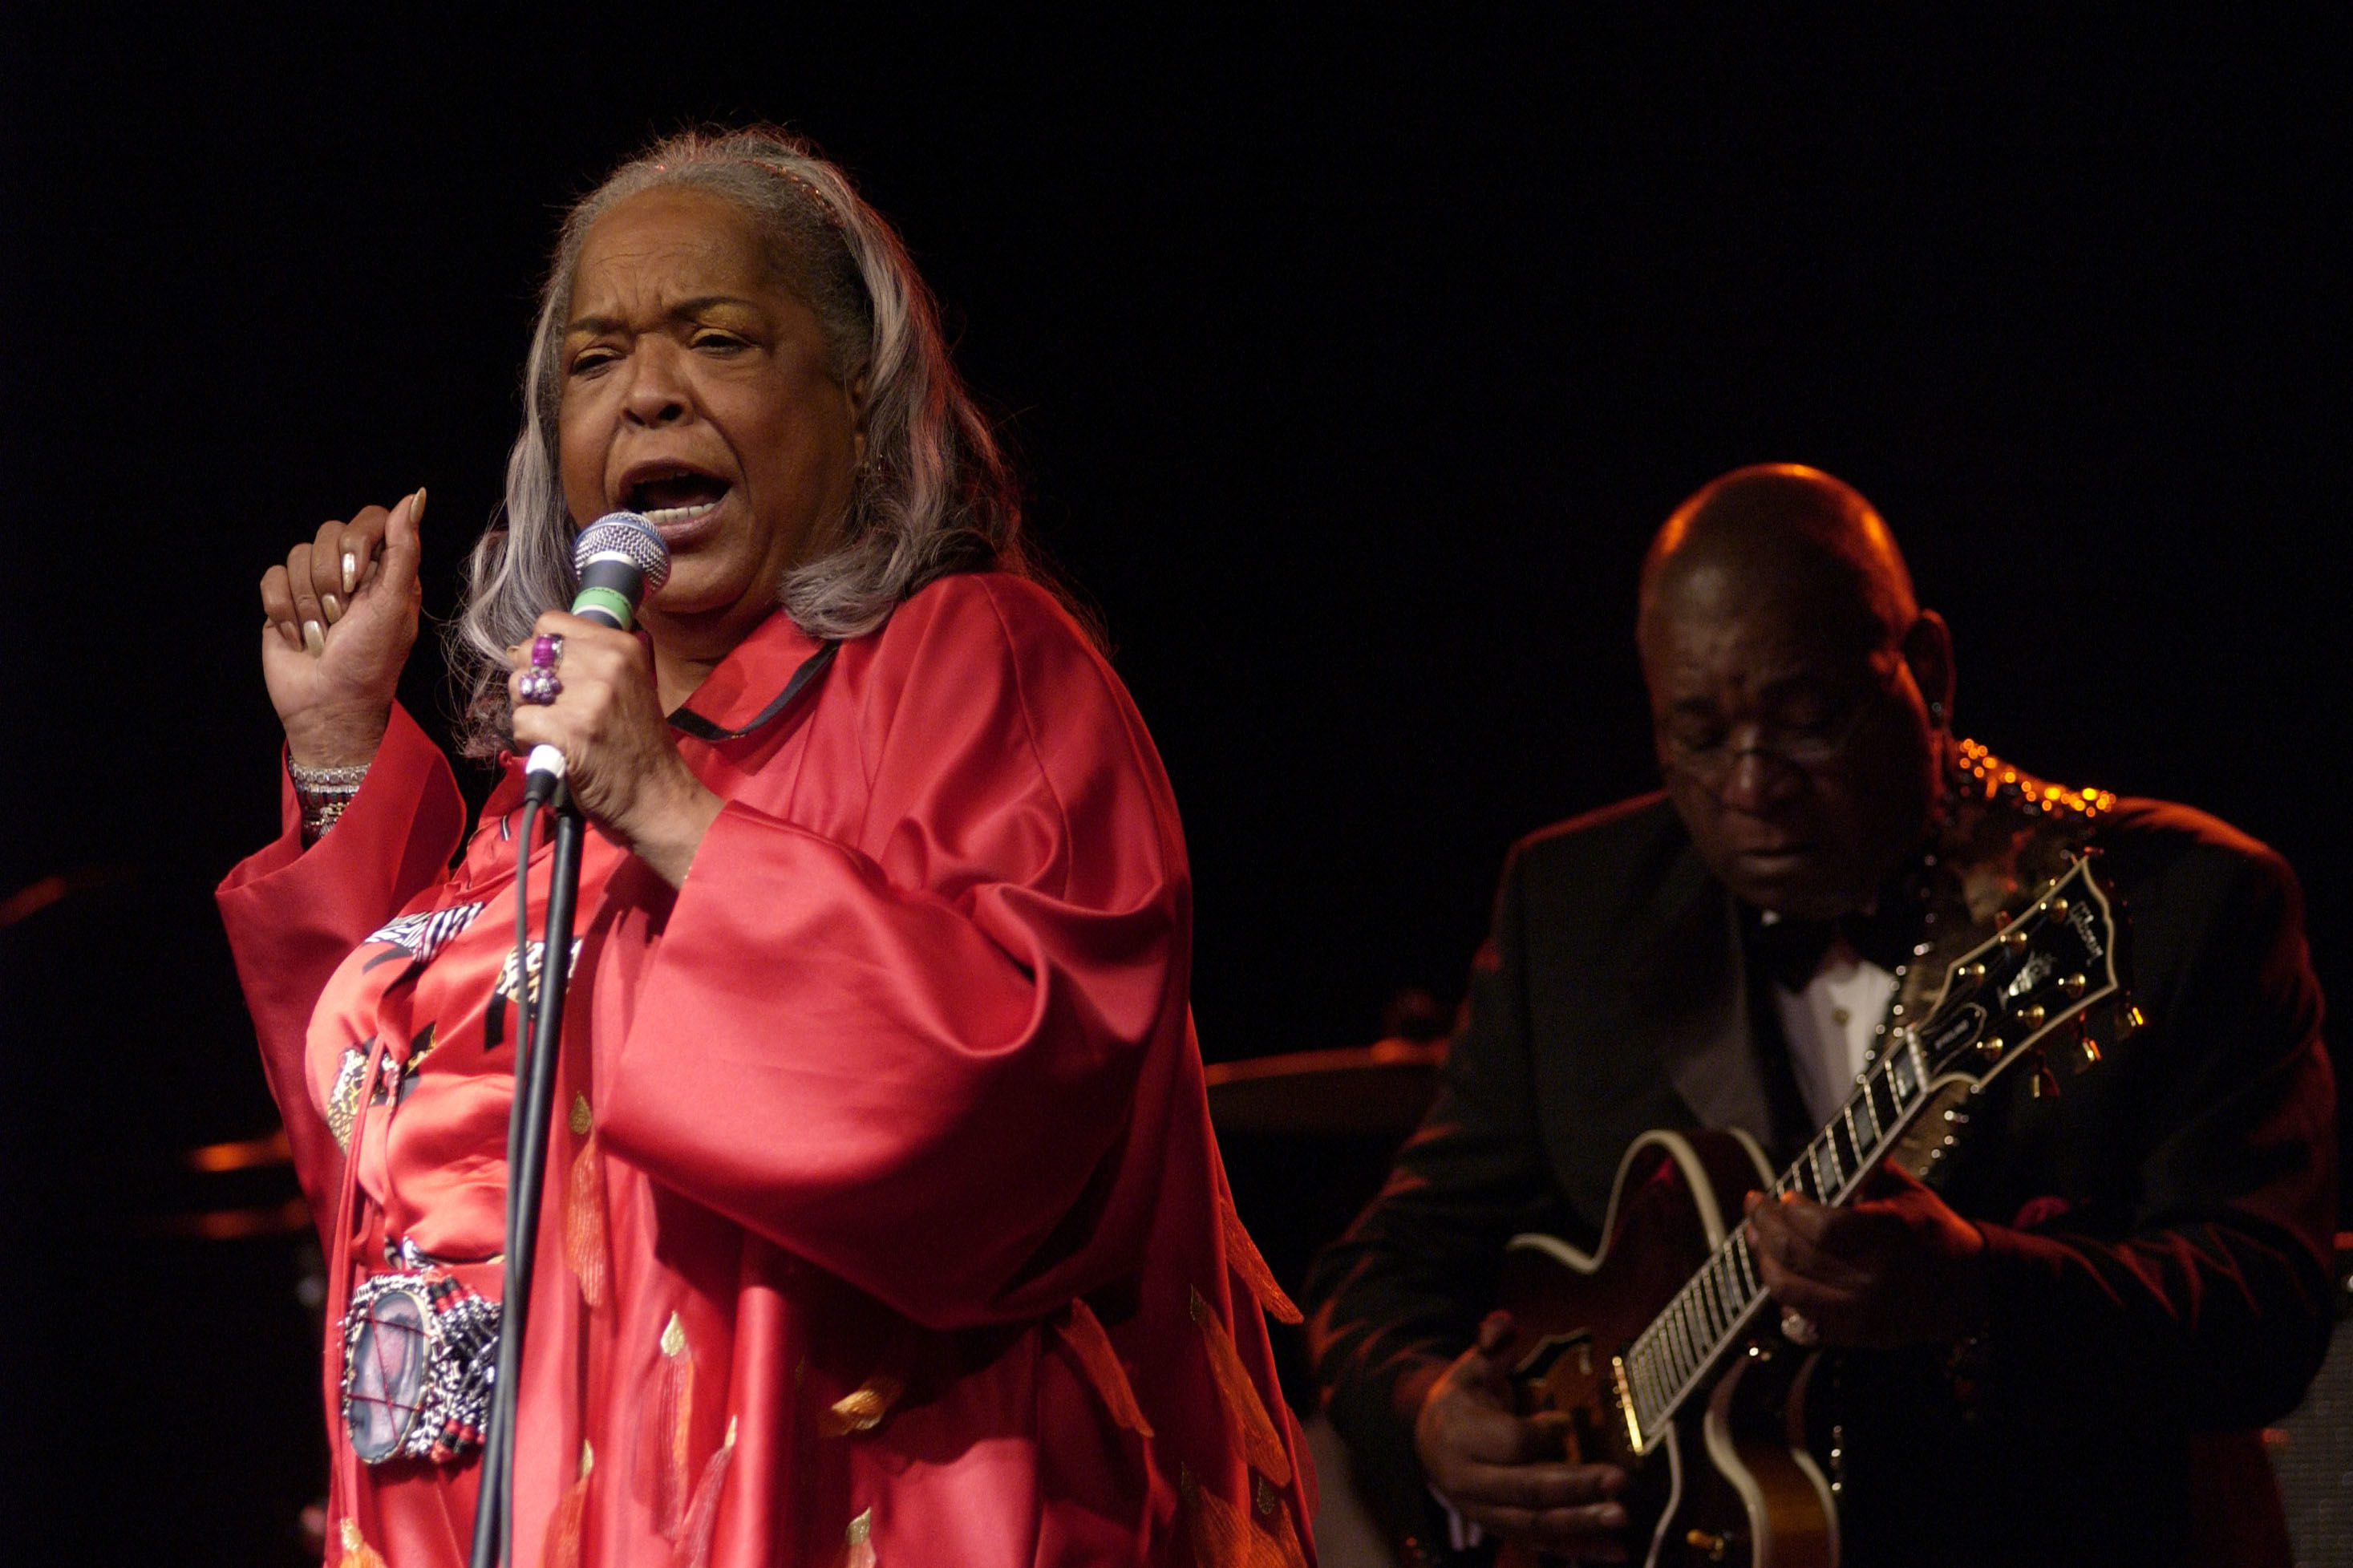 Della Reese, Music Legend and Touched By an Angel Star, Dead at 86